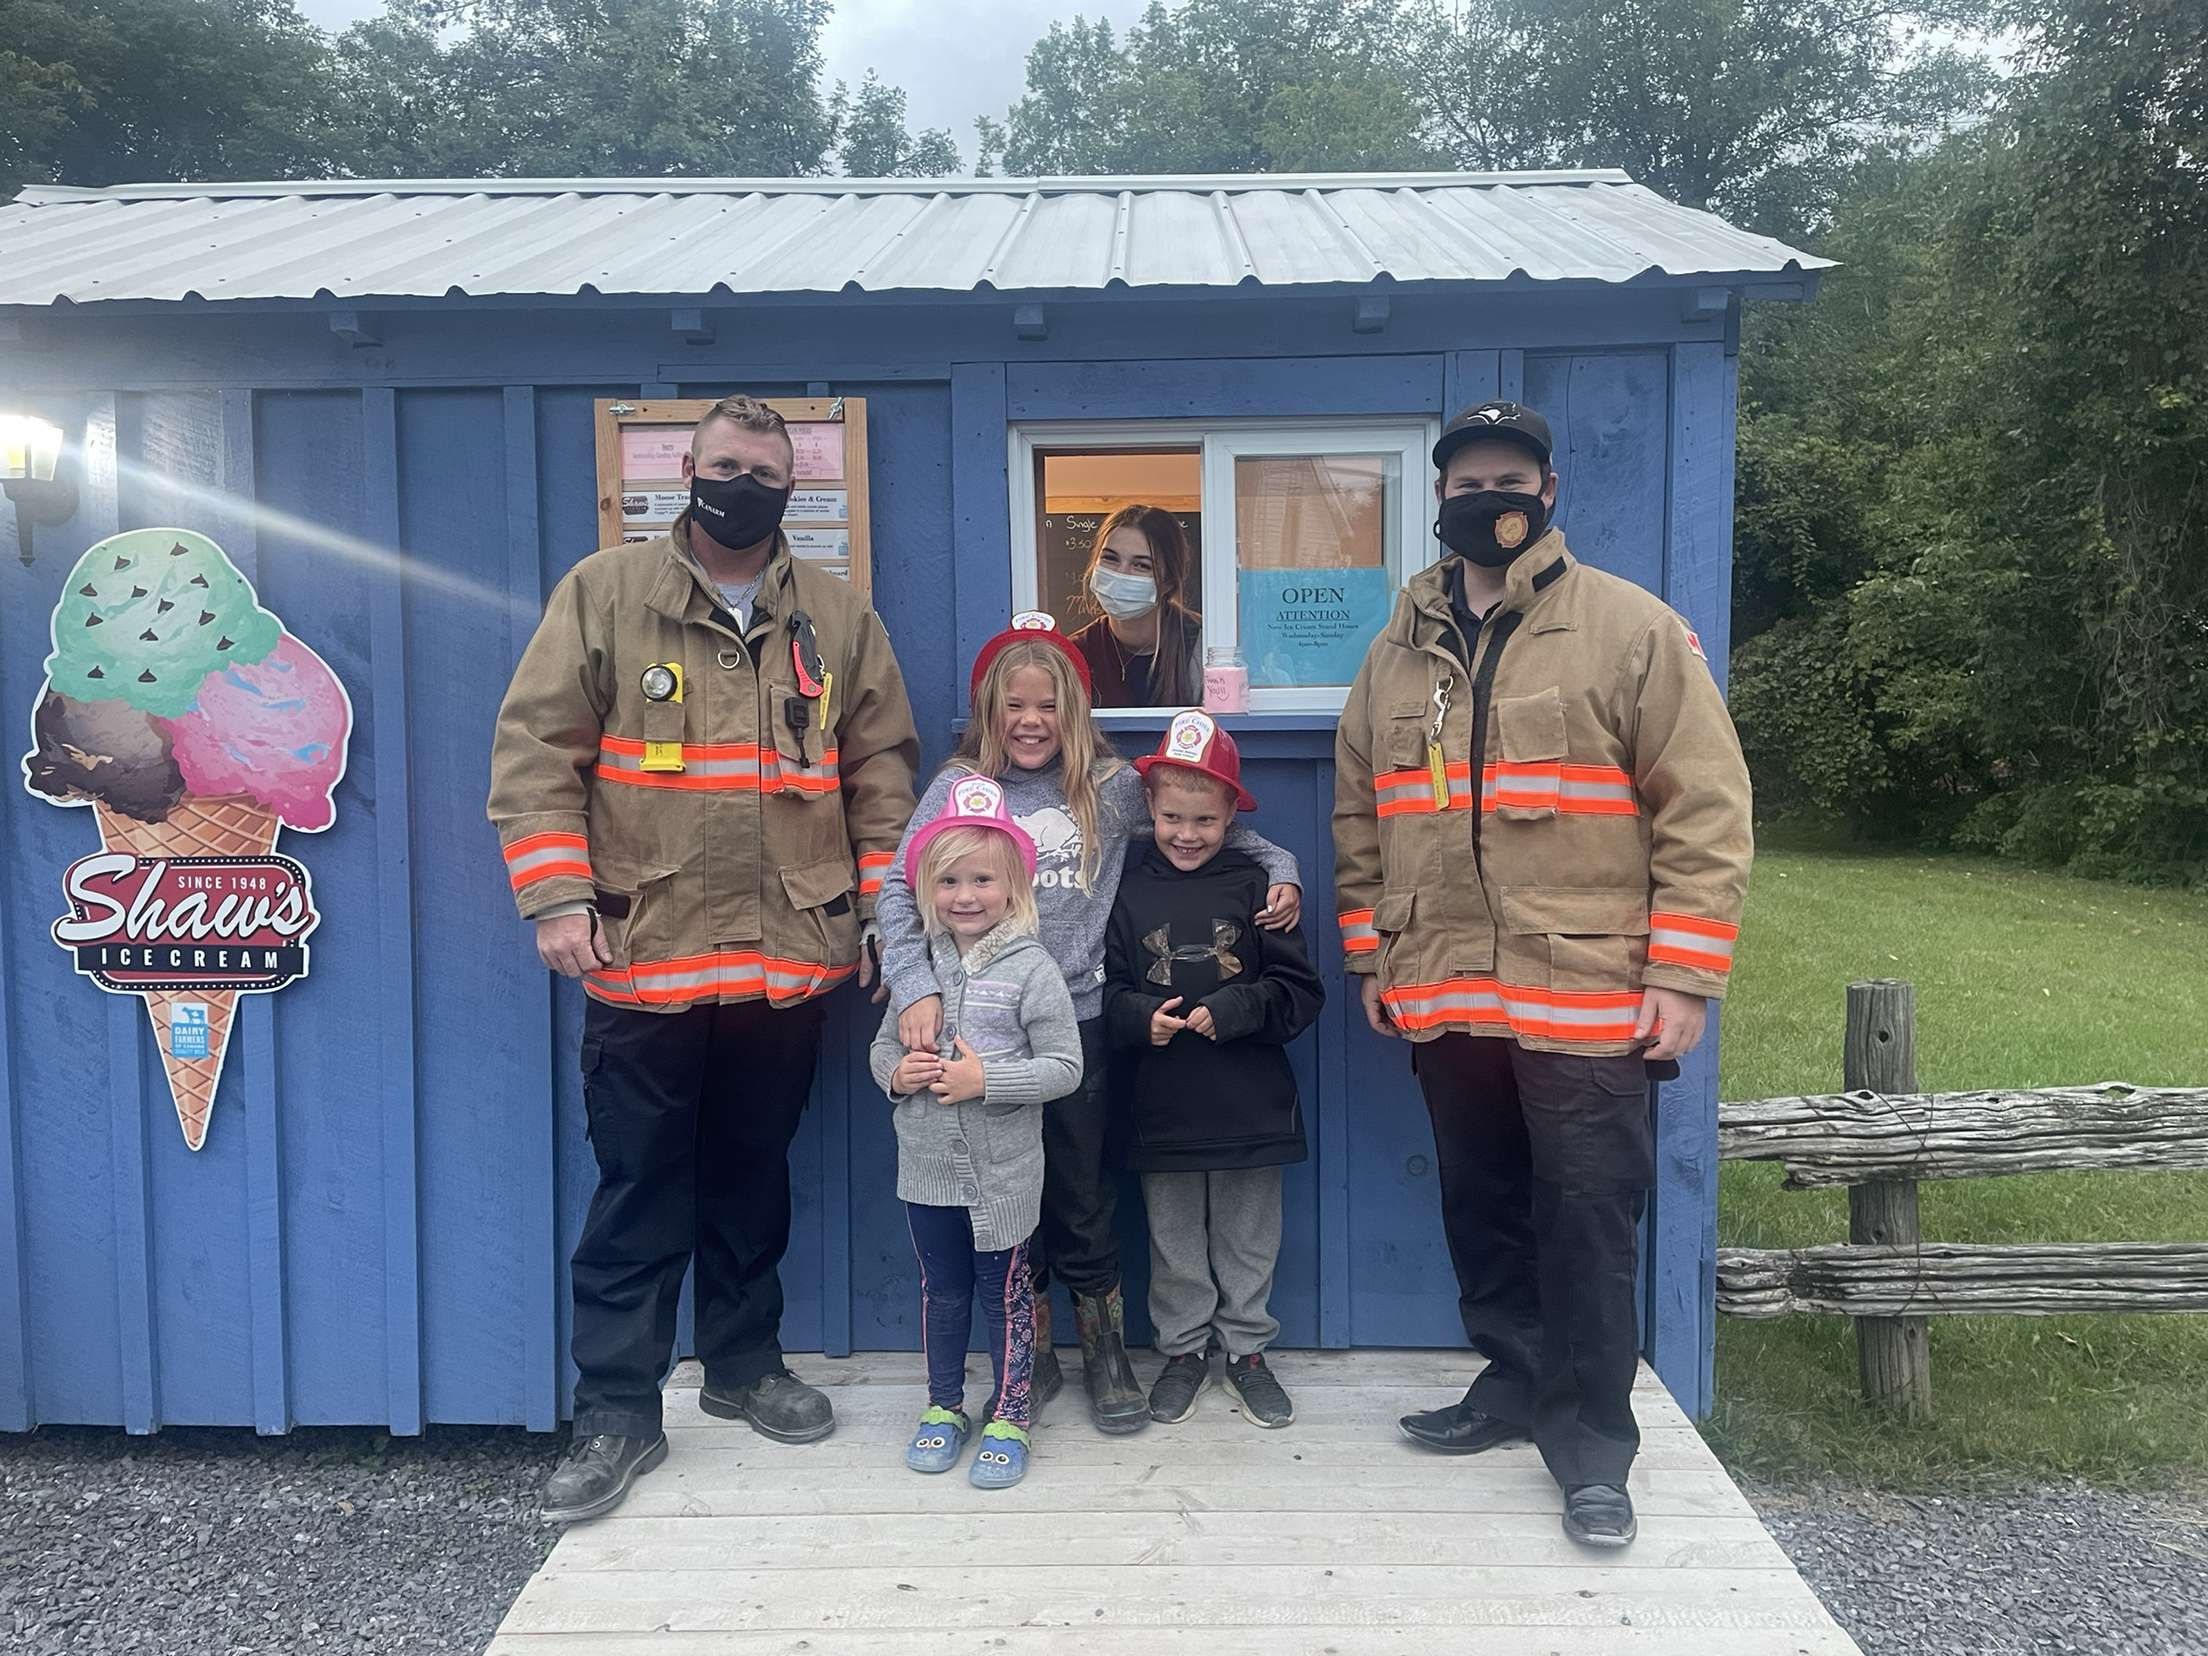 augusta firefighters with Creekside Diner's ice cream patrons